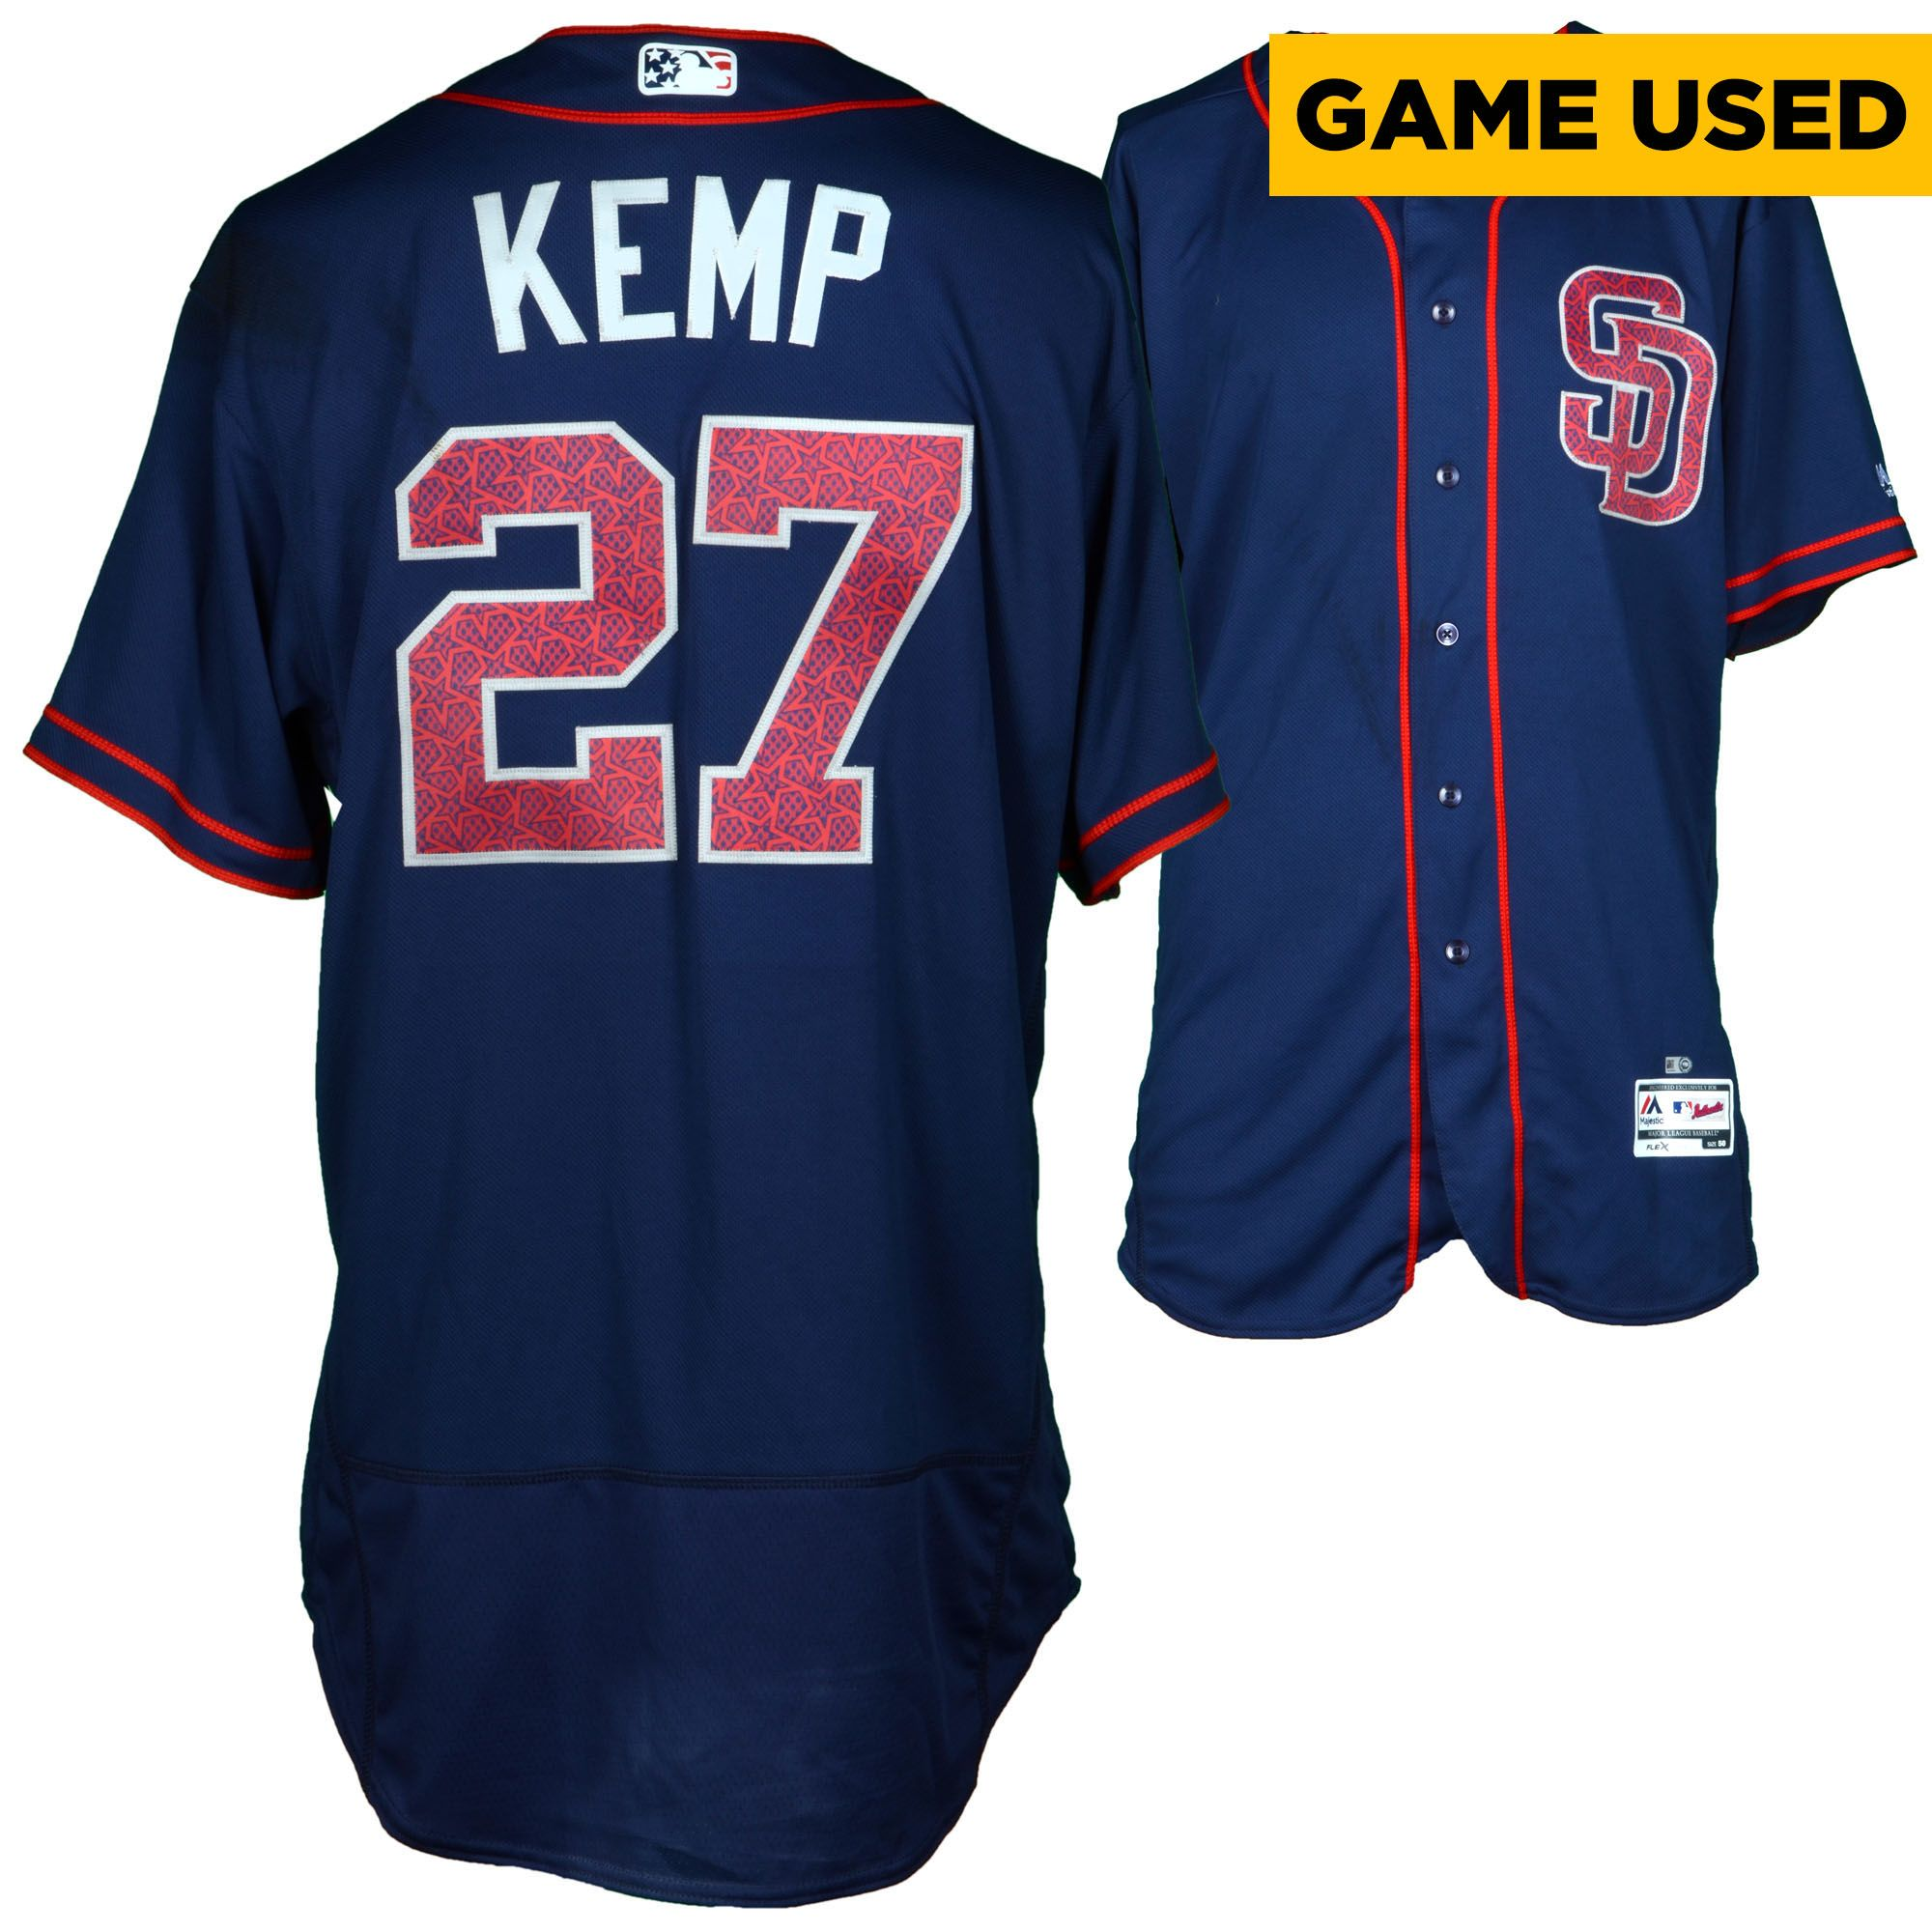 895dc753847 MLB Matt Kemp San Diego Padres Fanatics Authentic Game-Used Blue  27 Fourth  of July Stars and Stripes Jersey vs Arizona Diamondbacks on July 4